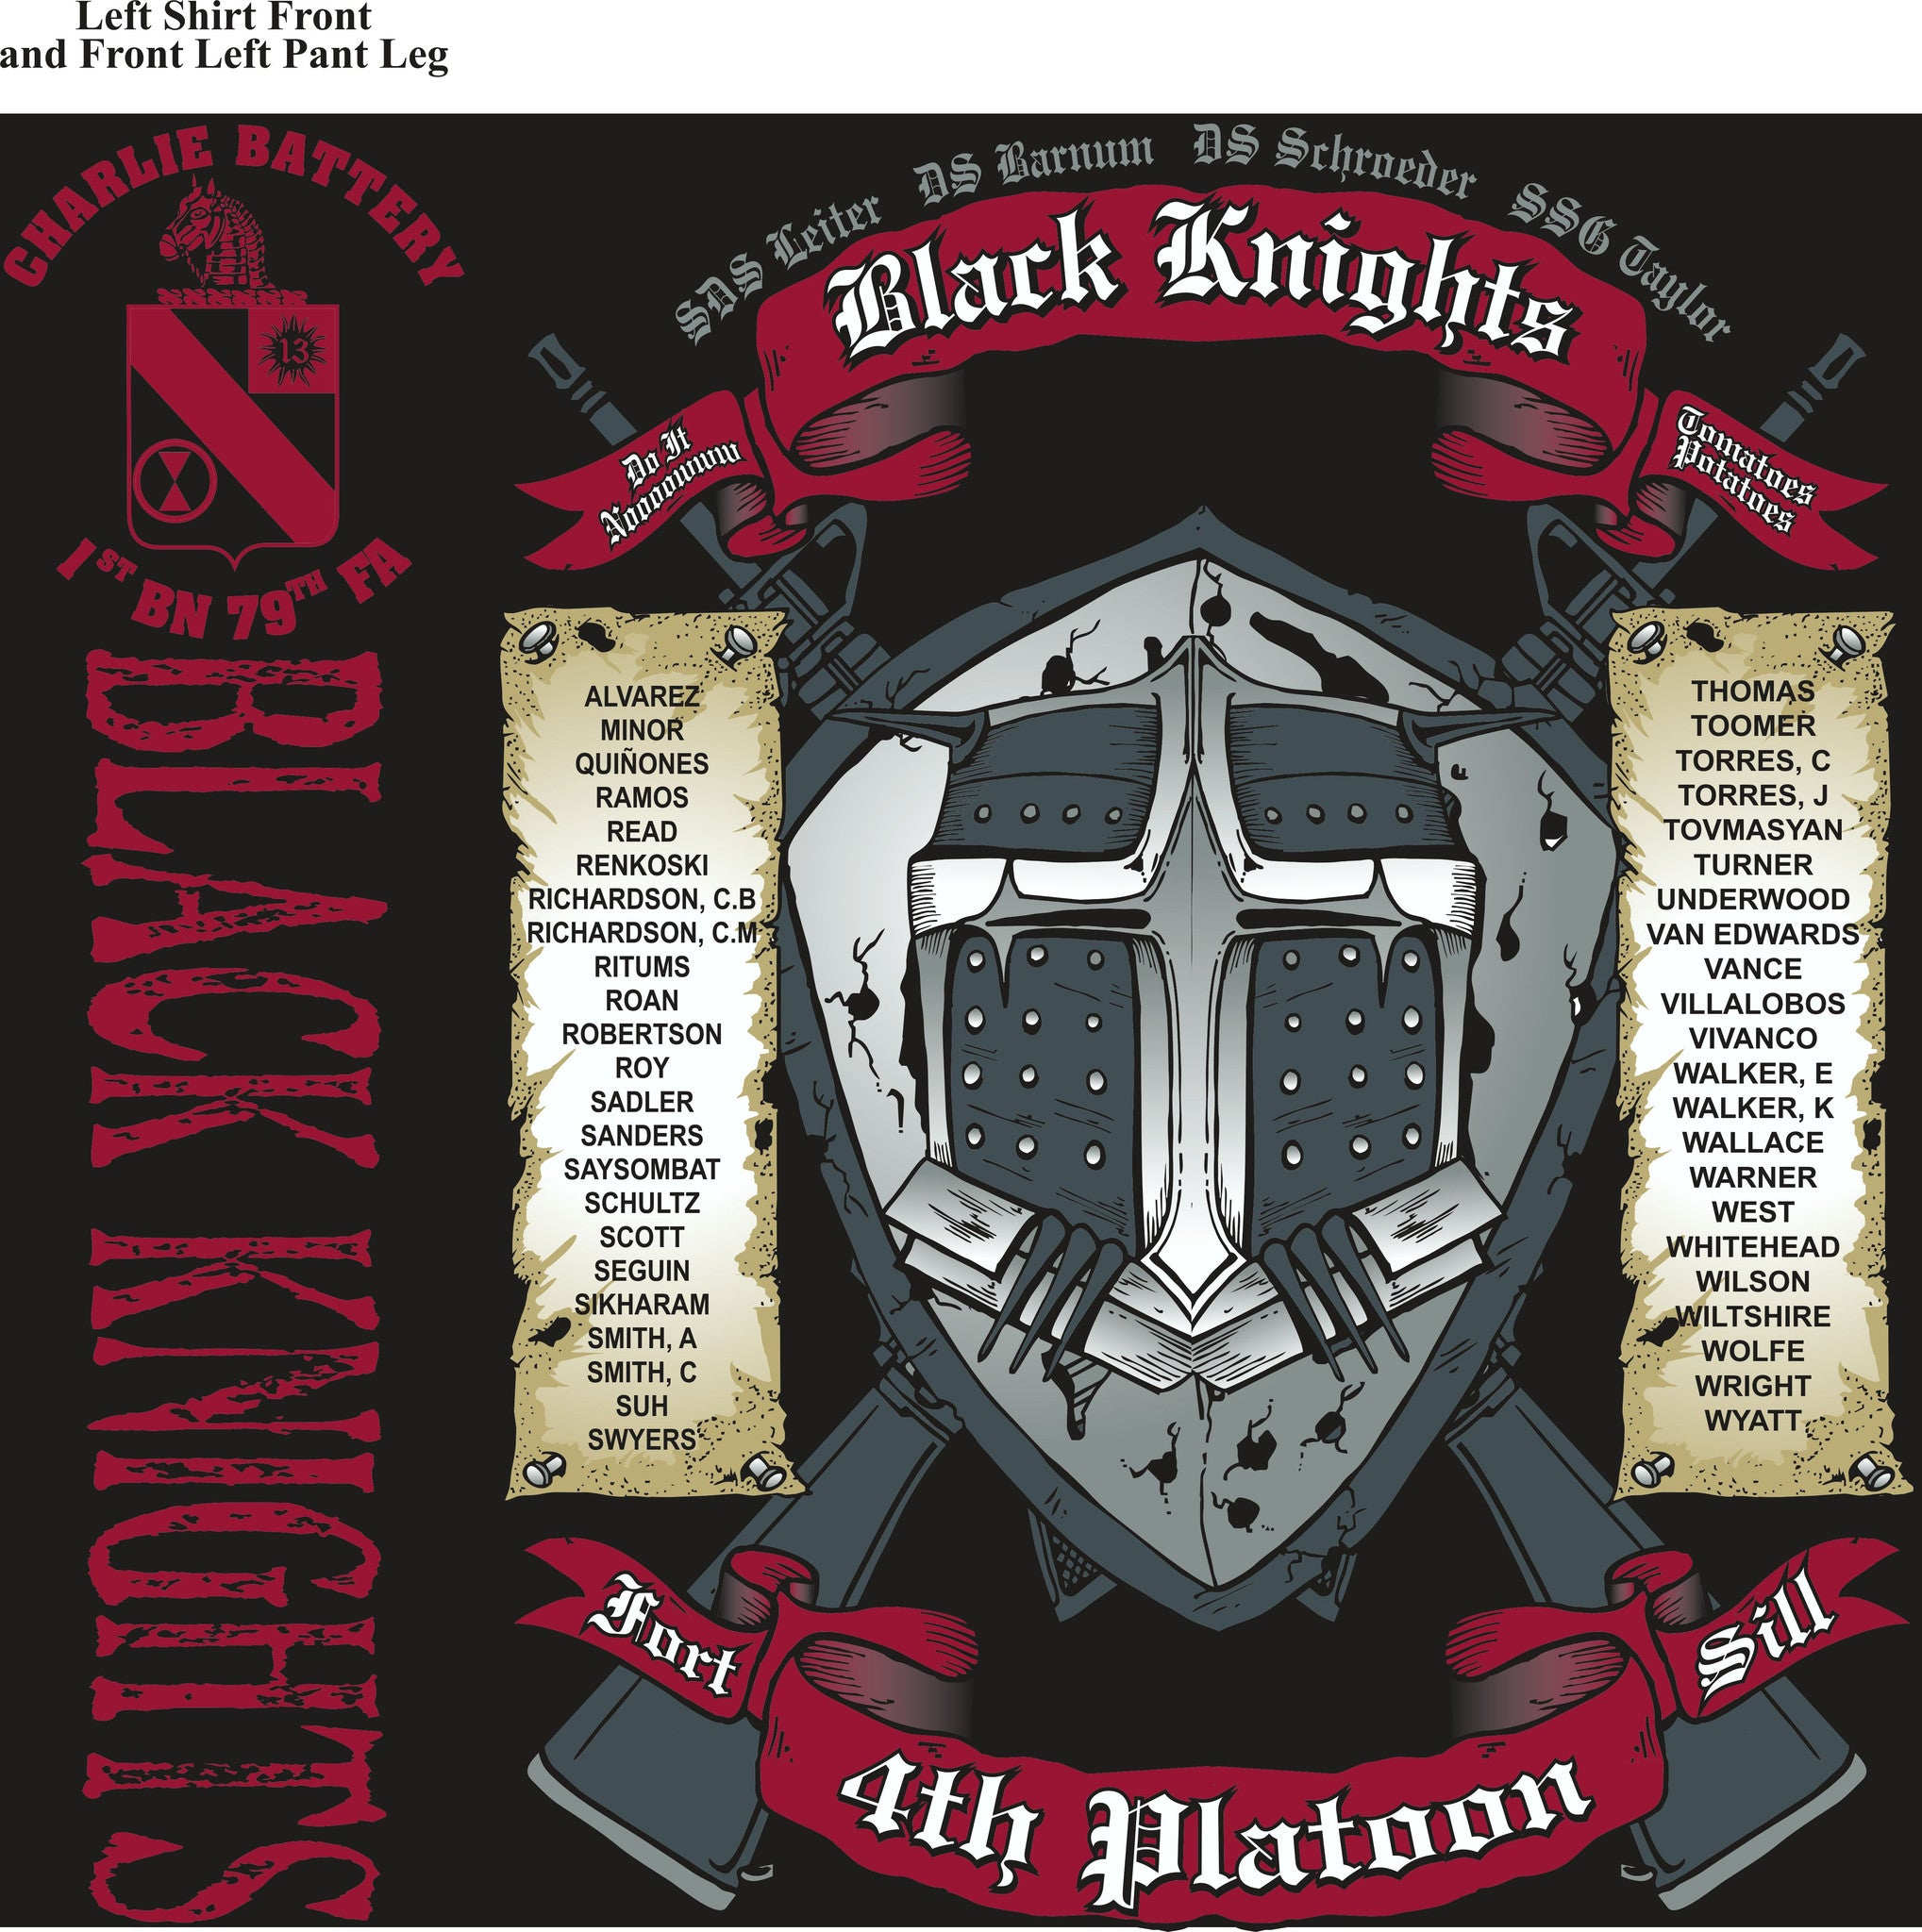 PLATOON SHIRTS (2nd generation print) CHARLIE 1st 79th BLACK KNIGHTS JULY 2016